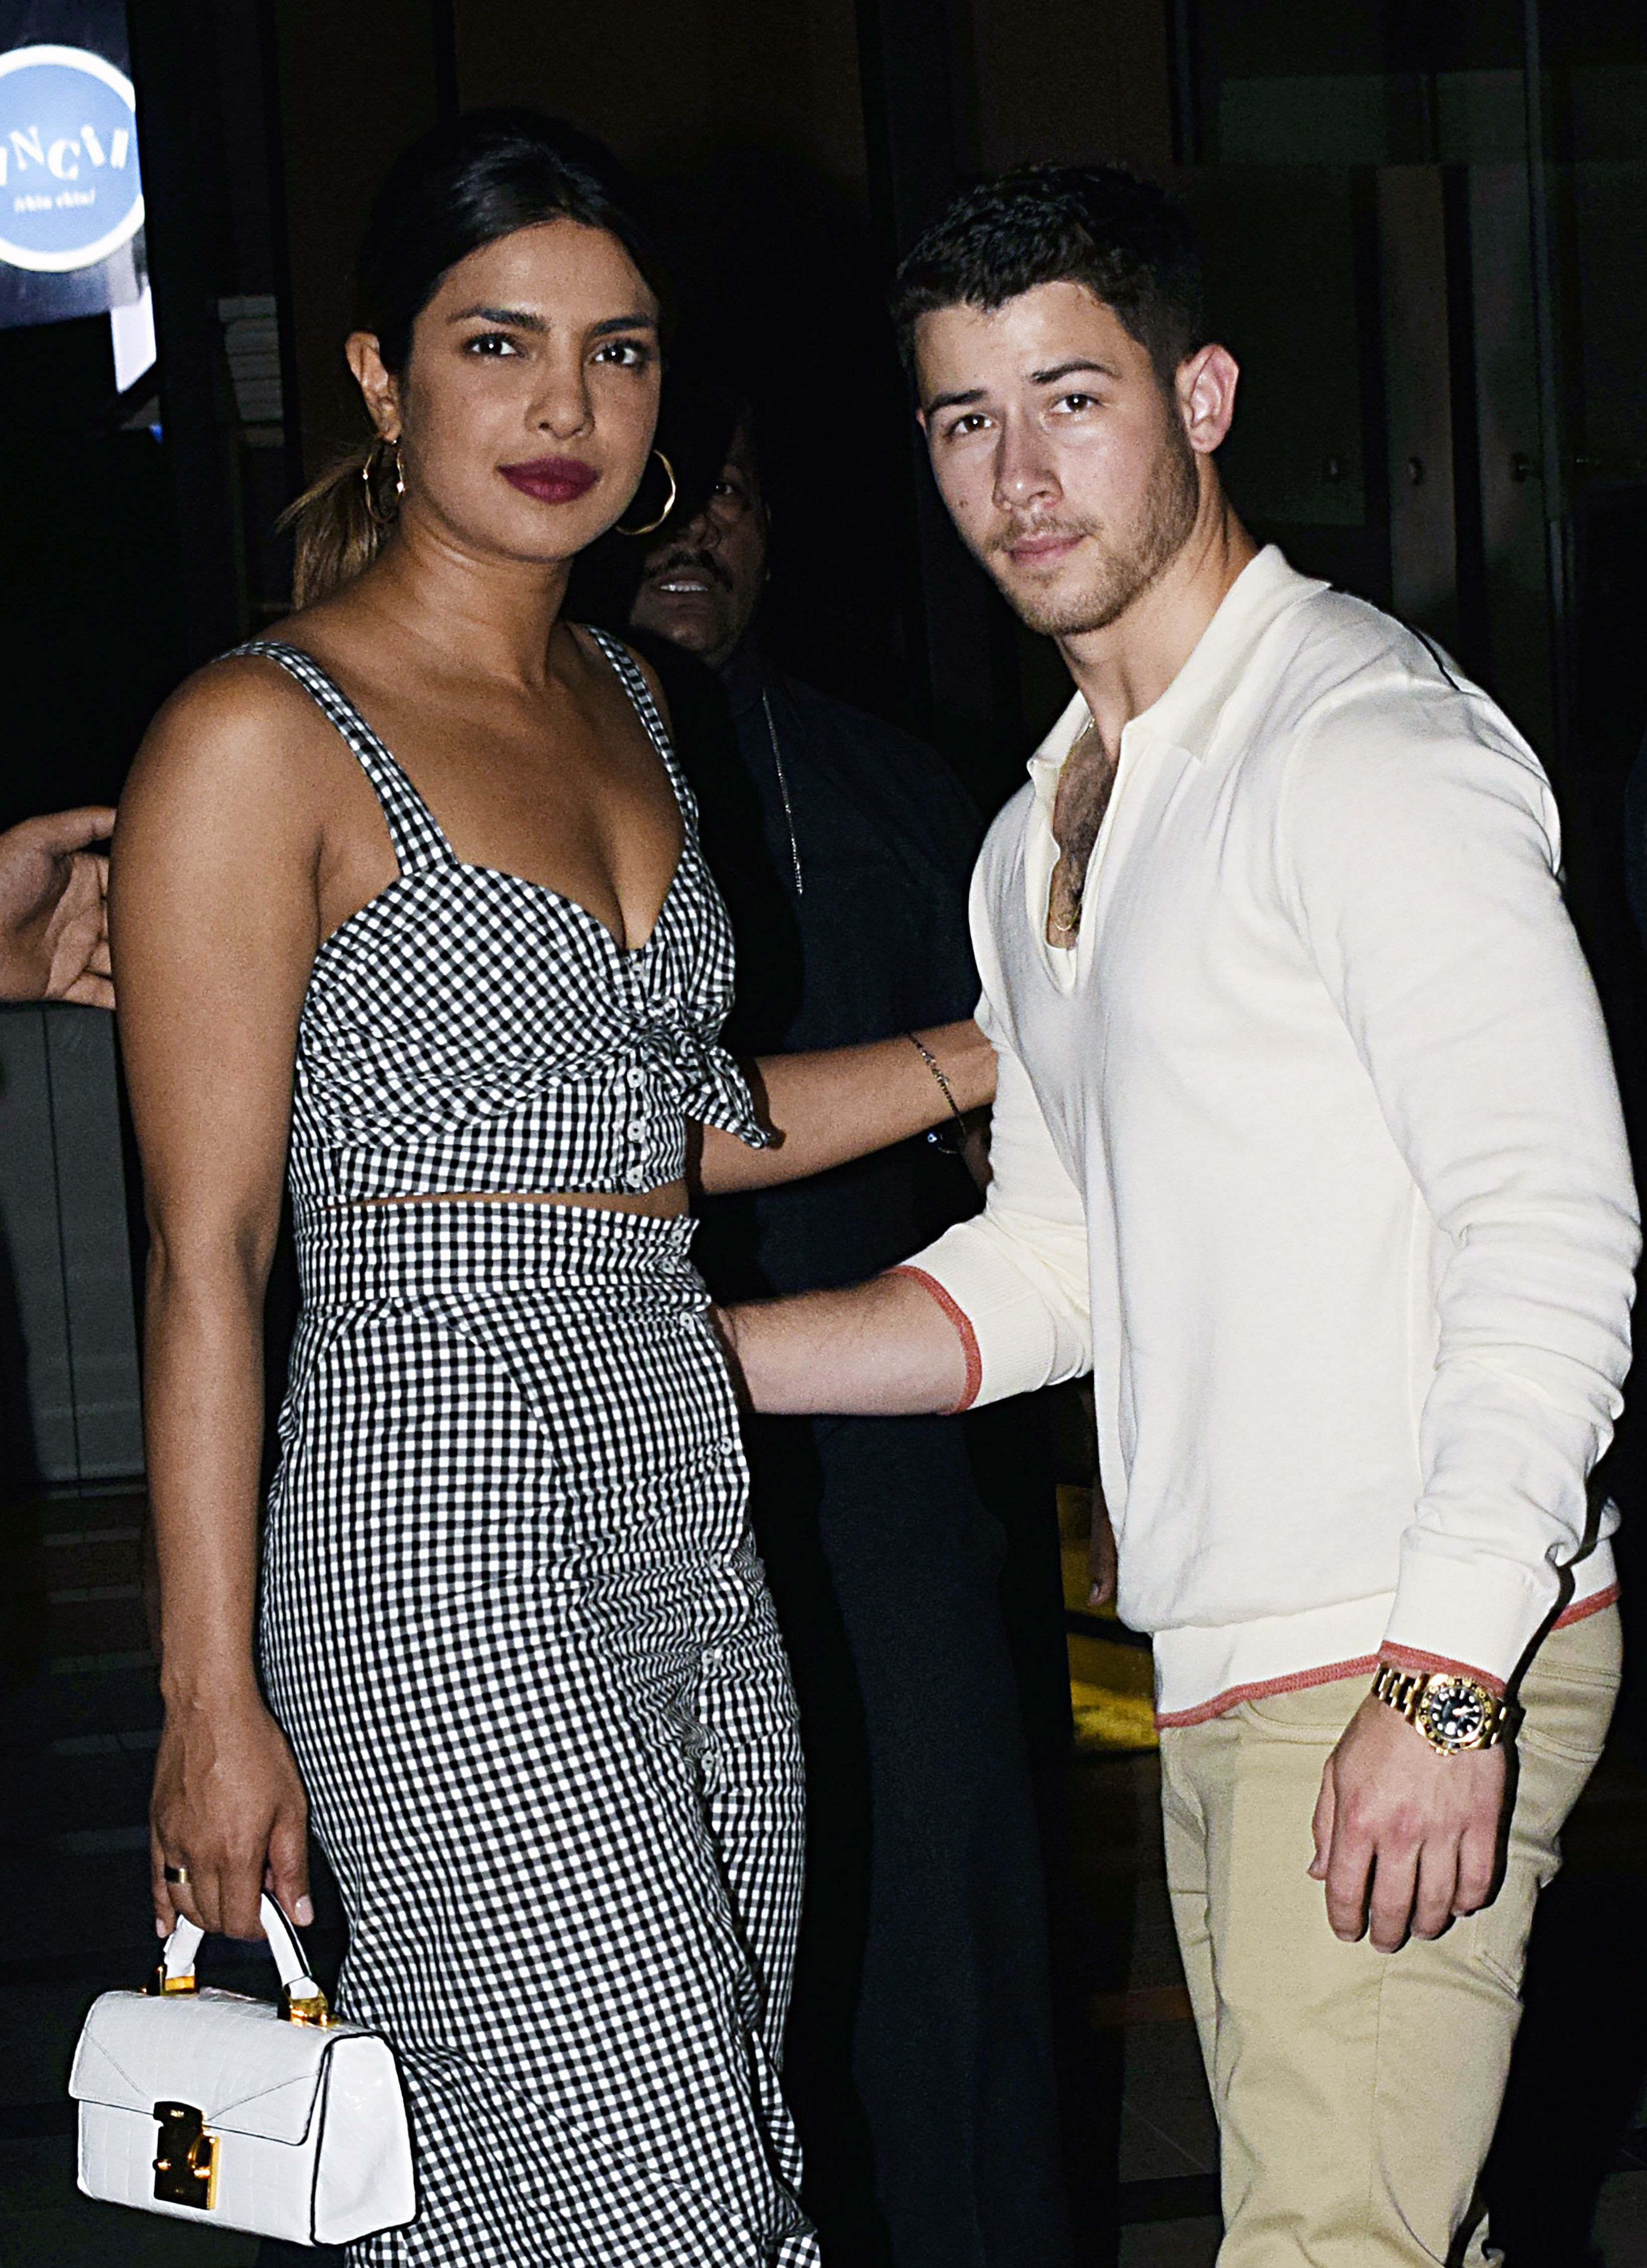 Indian Bollywood actress Priyanka Chopra (L) and US singer Nick Jonas (R) stand together in Mumbai on June 22, 2018.